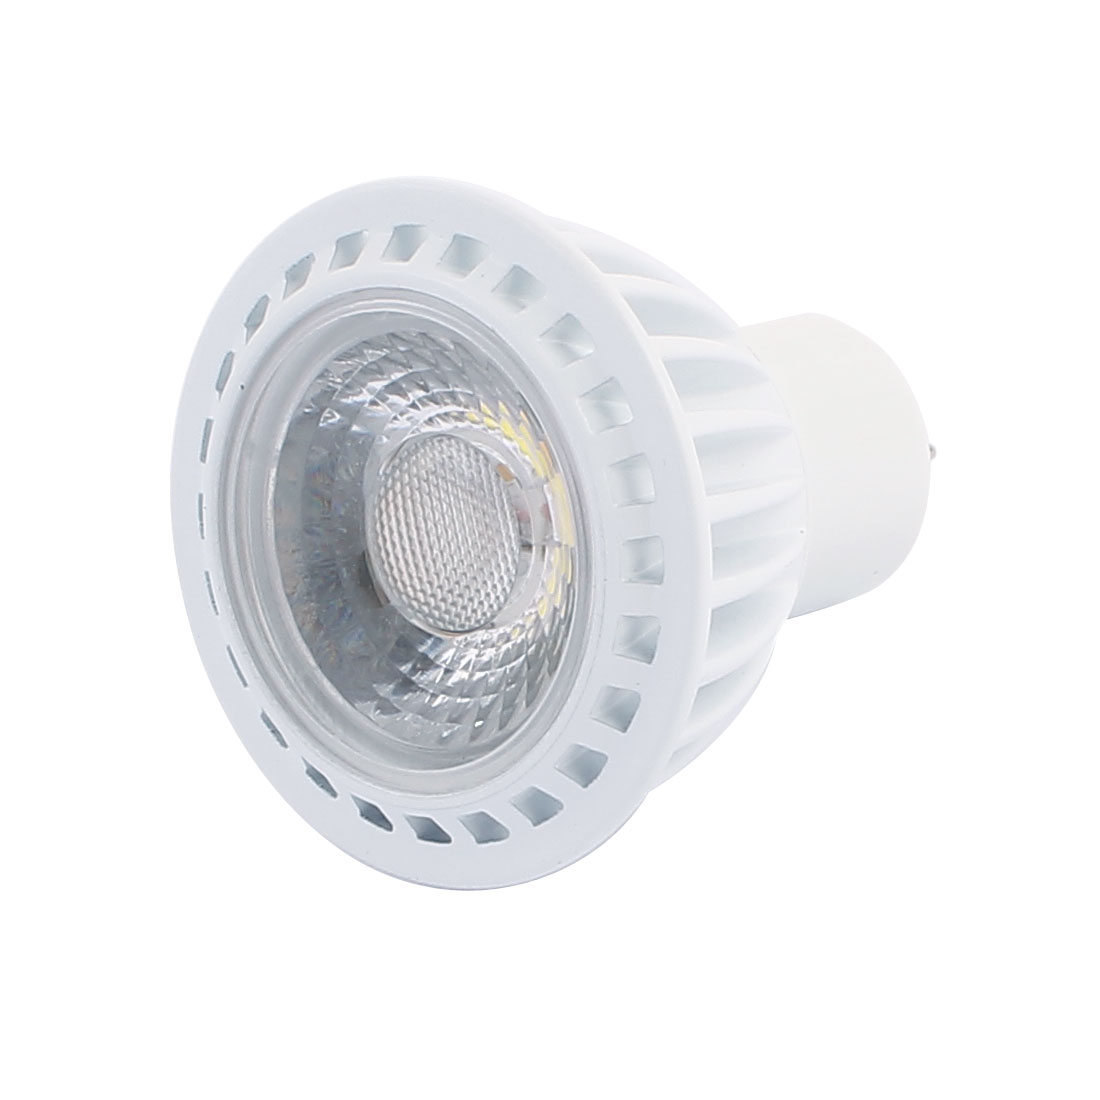 AC85-265V 3W GU5.3 COB Integrated Chip LED Spotlight Lamp Bulb Downlight Pure White